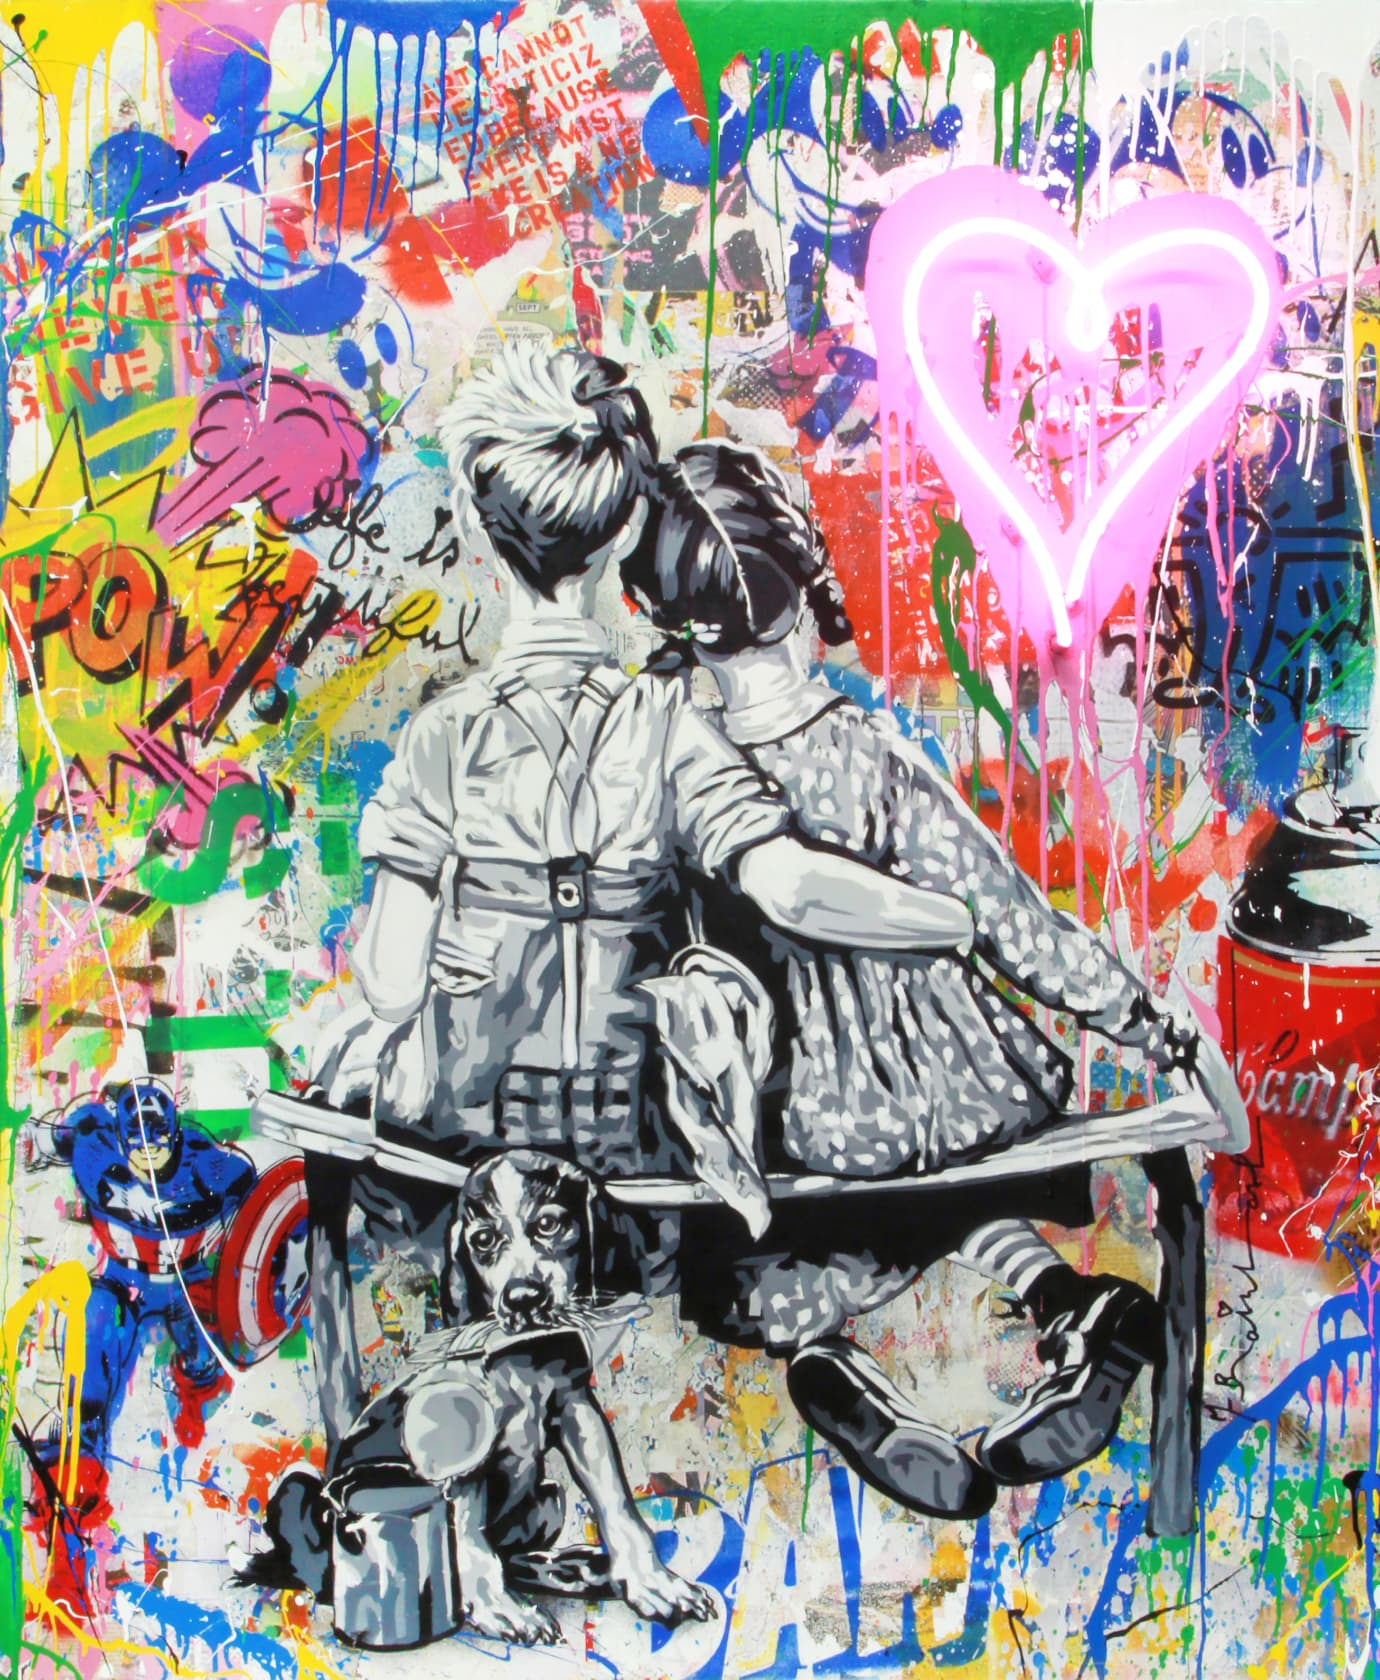 Mr Brainwash Work Well Together Neon Lightbulb and Mixed Media on Canvas